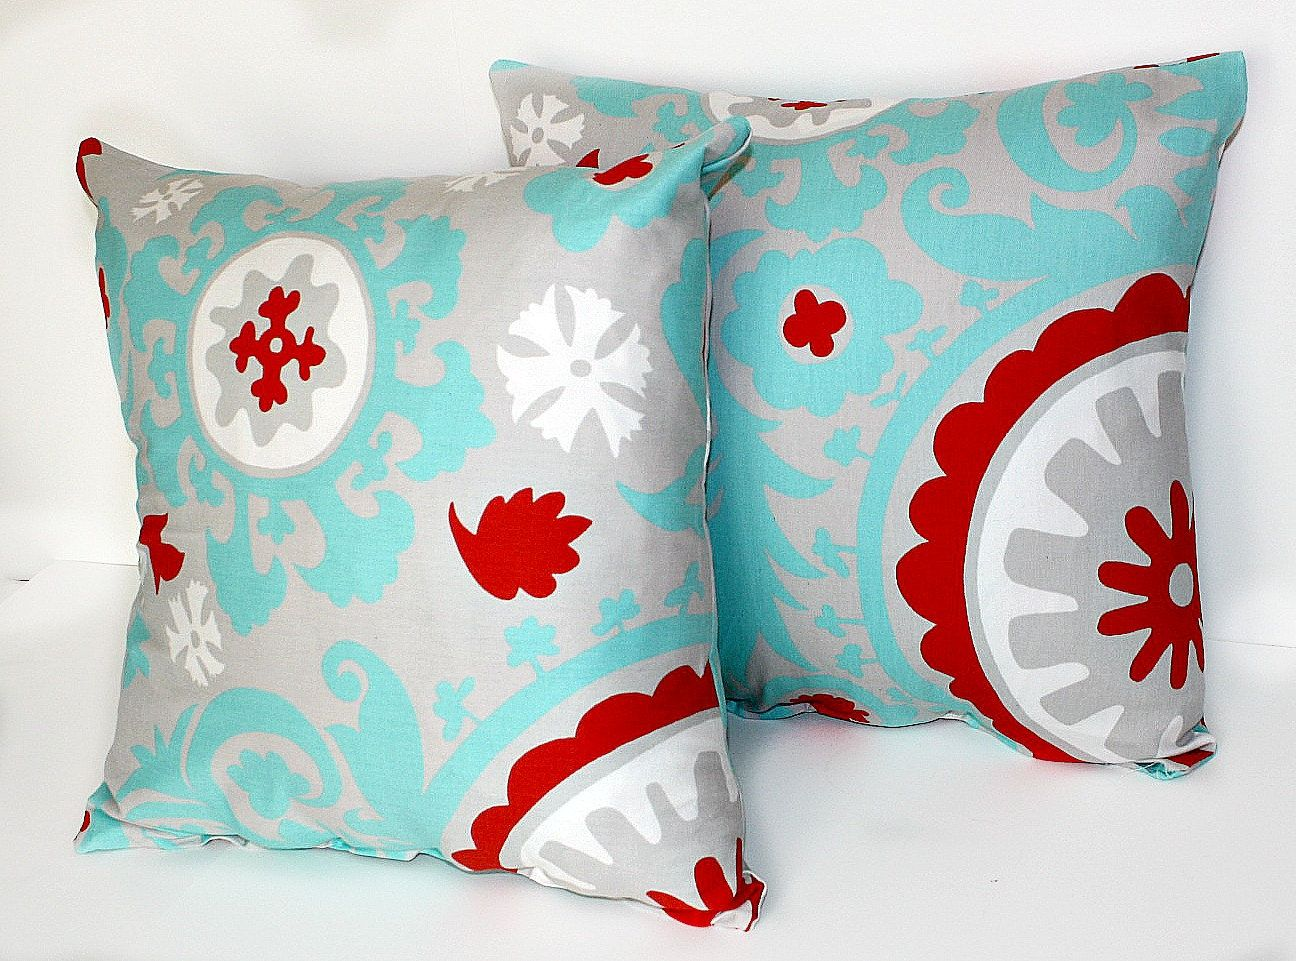 Etsy Throw Pillows 2 Decorative Pillow Covers Throw Pillows 18 X 18 Inches Gray